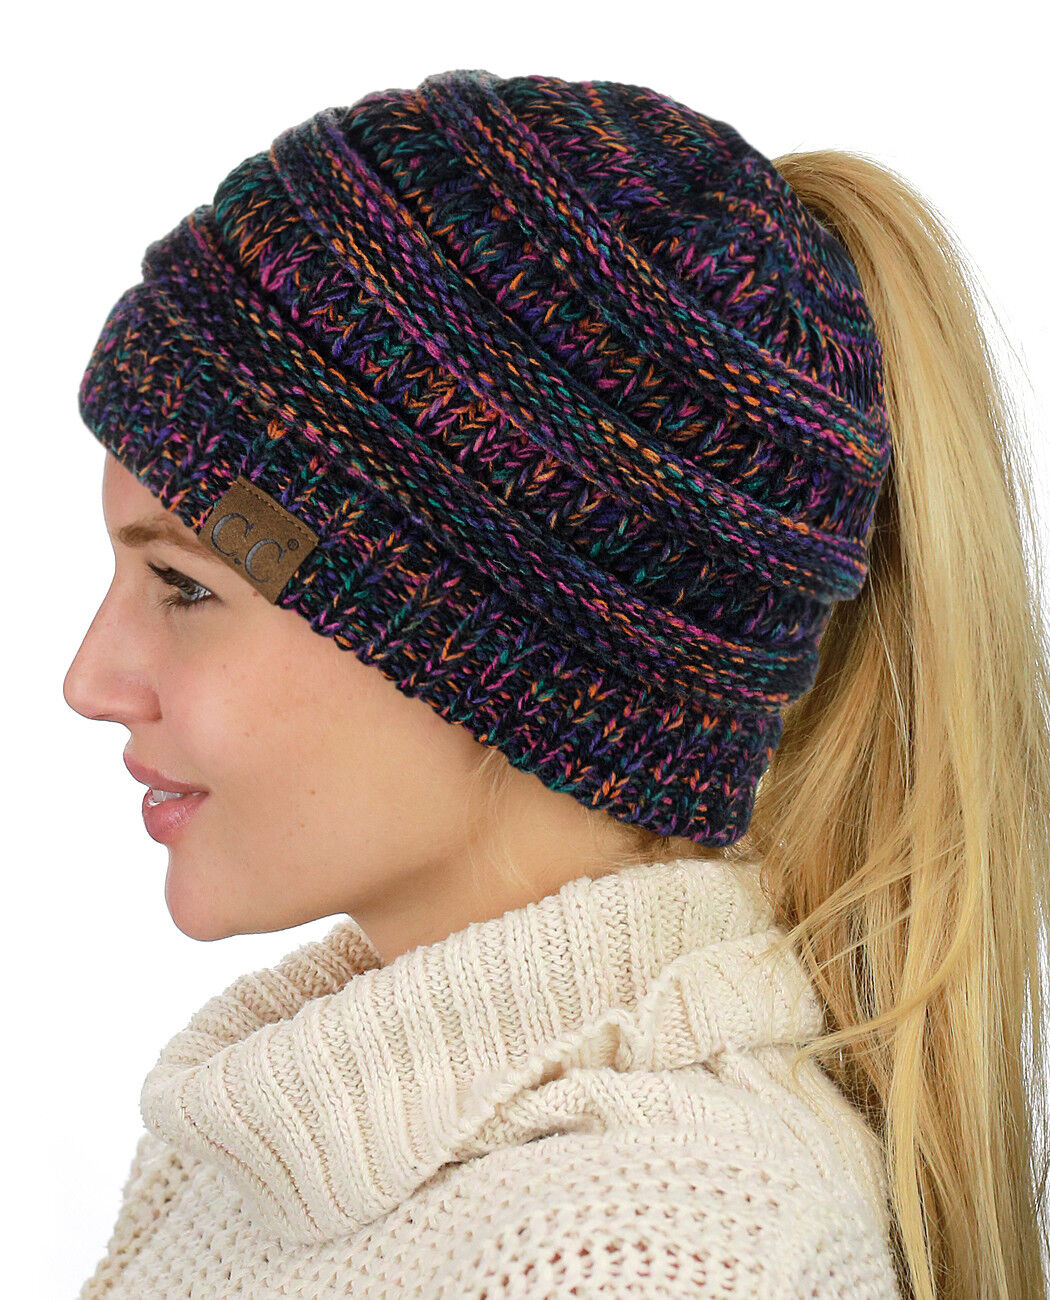 CC Ponytail Beanie Hat Soft Stretch Cable Knit High Bun Ponytail C.C Beanie!